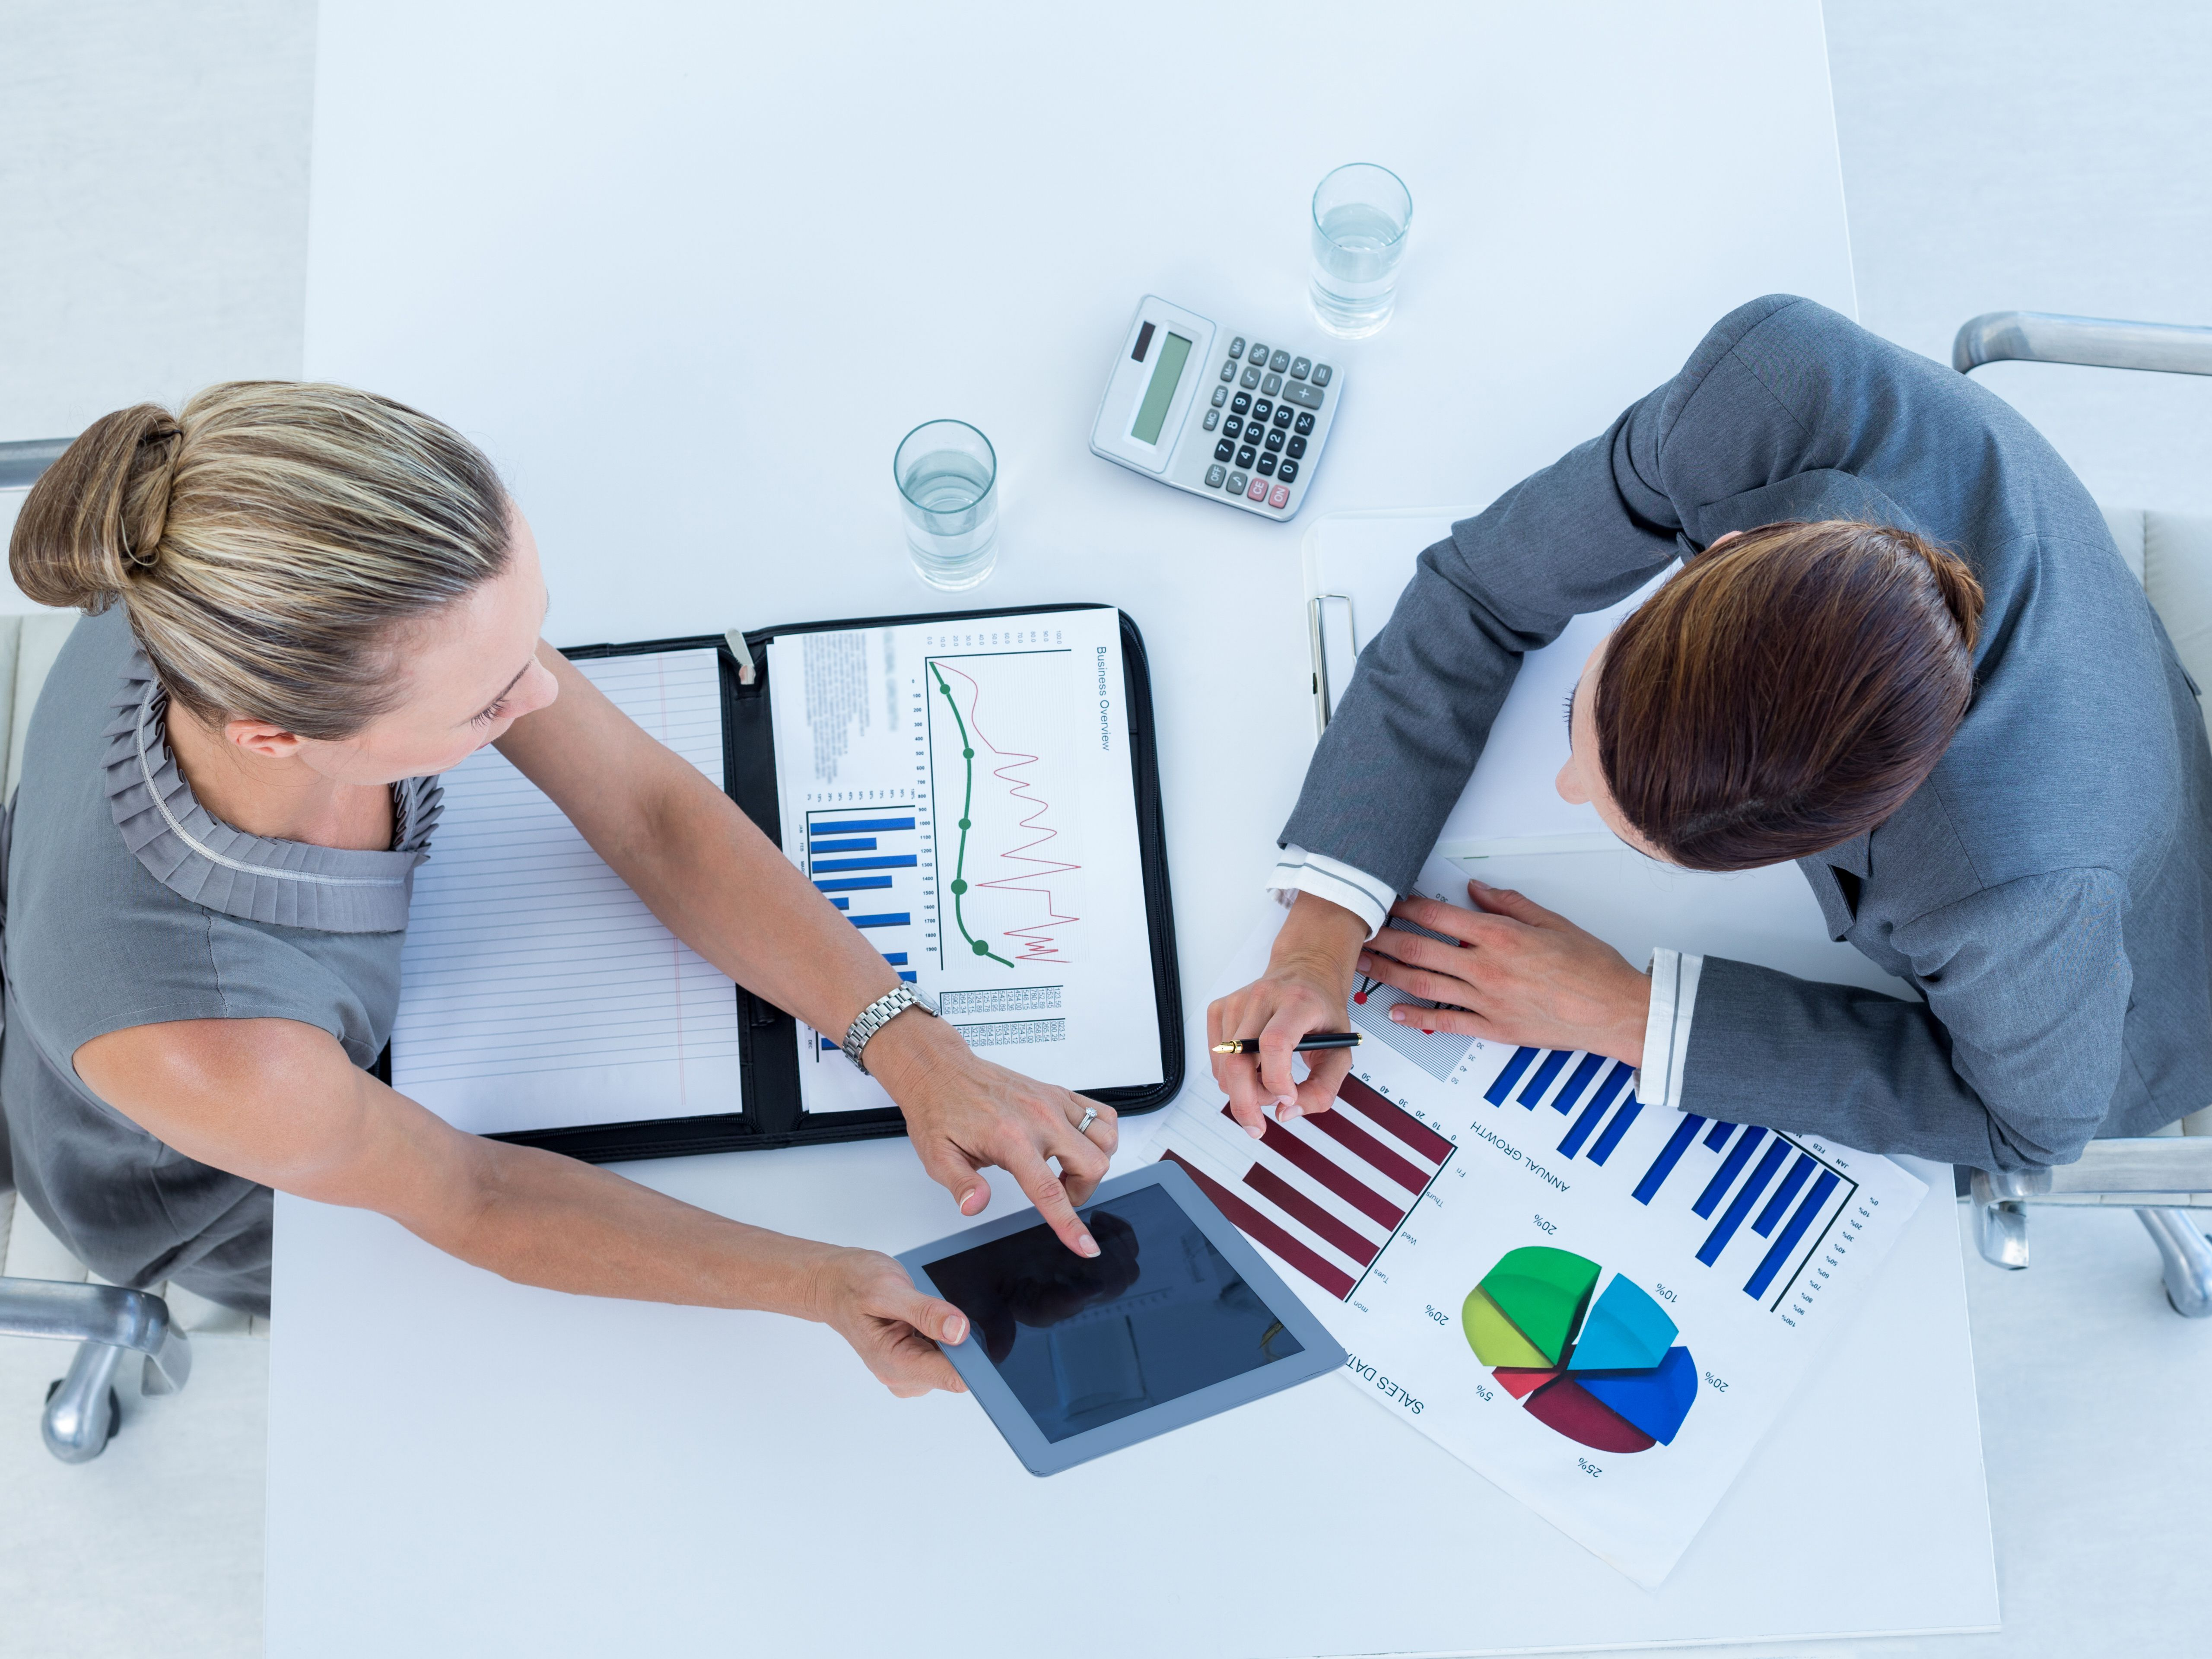 The Personal Financial Advisors Guide to the Microsoft Office System